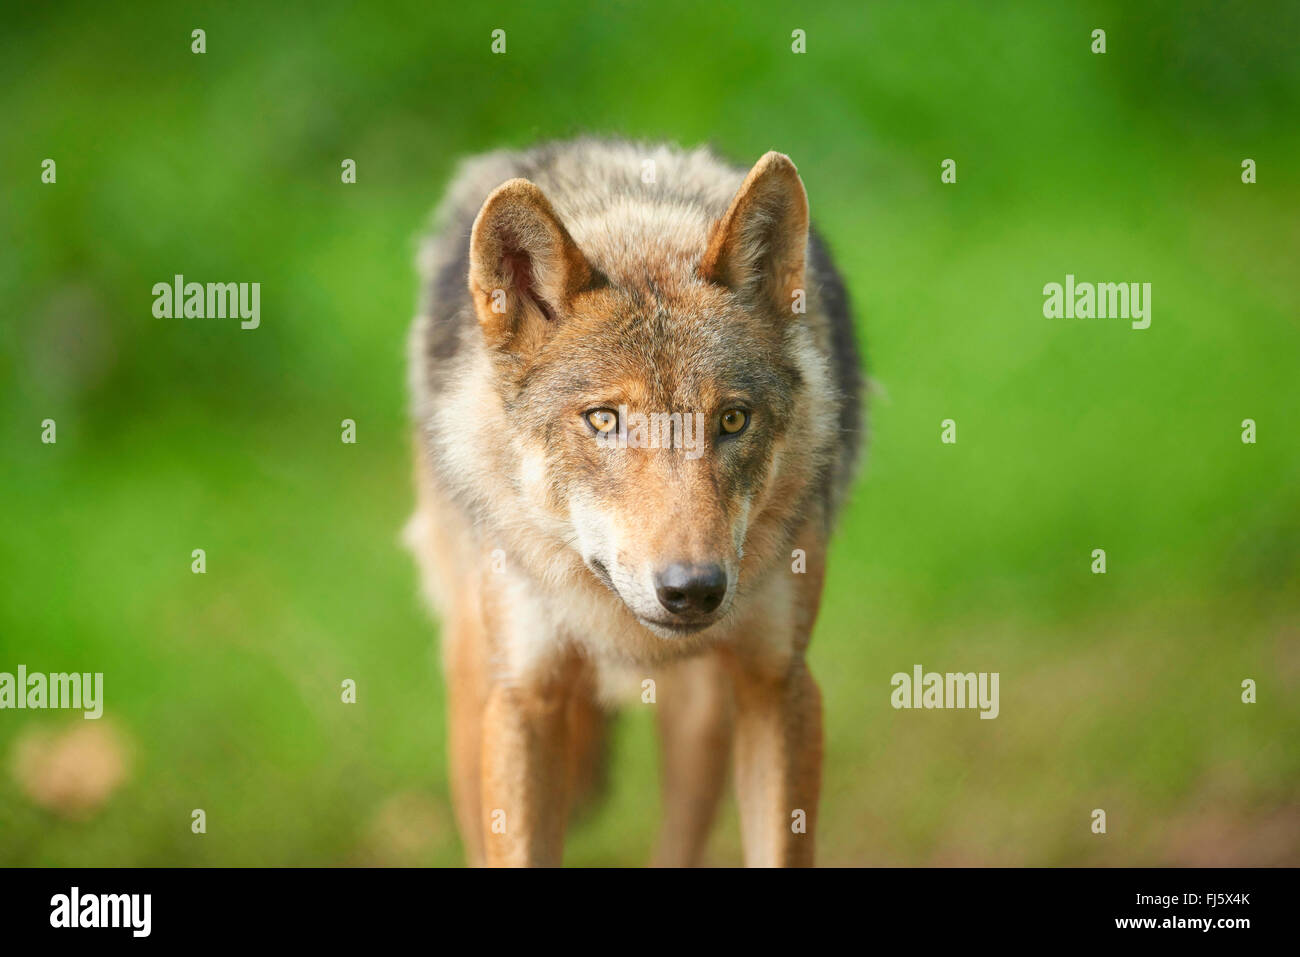 European gray wolf (Canis lupus lupus), portrait of a wolf, front view, Germany, Bavaria Stock Photo